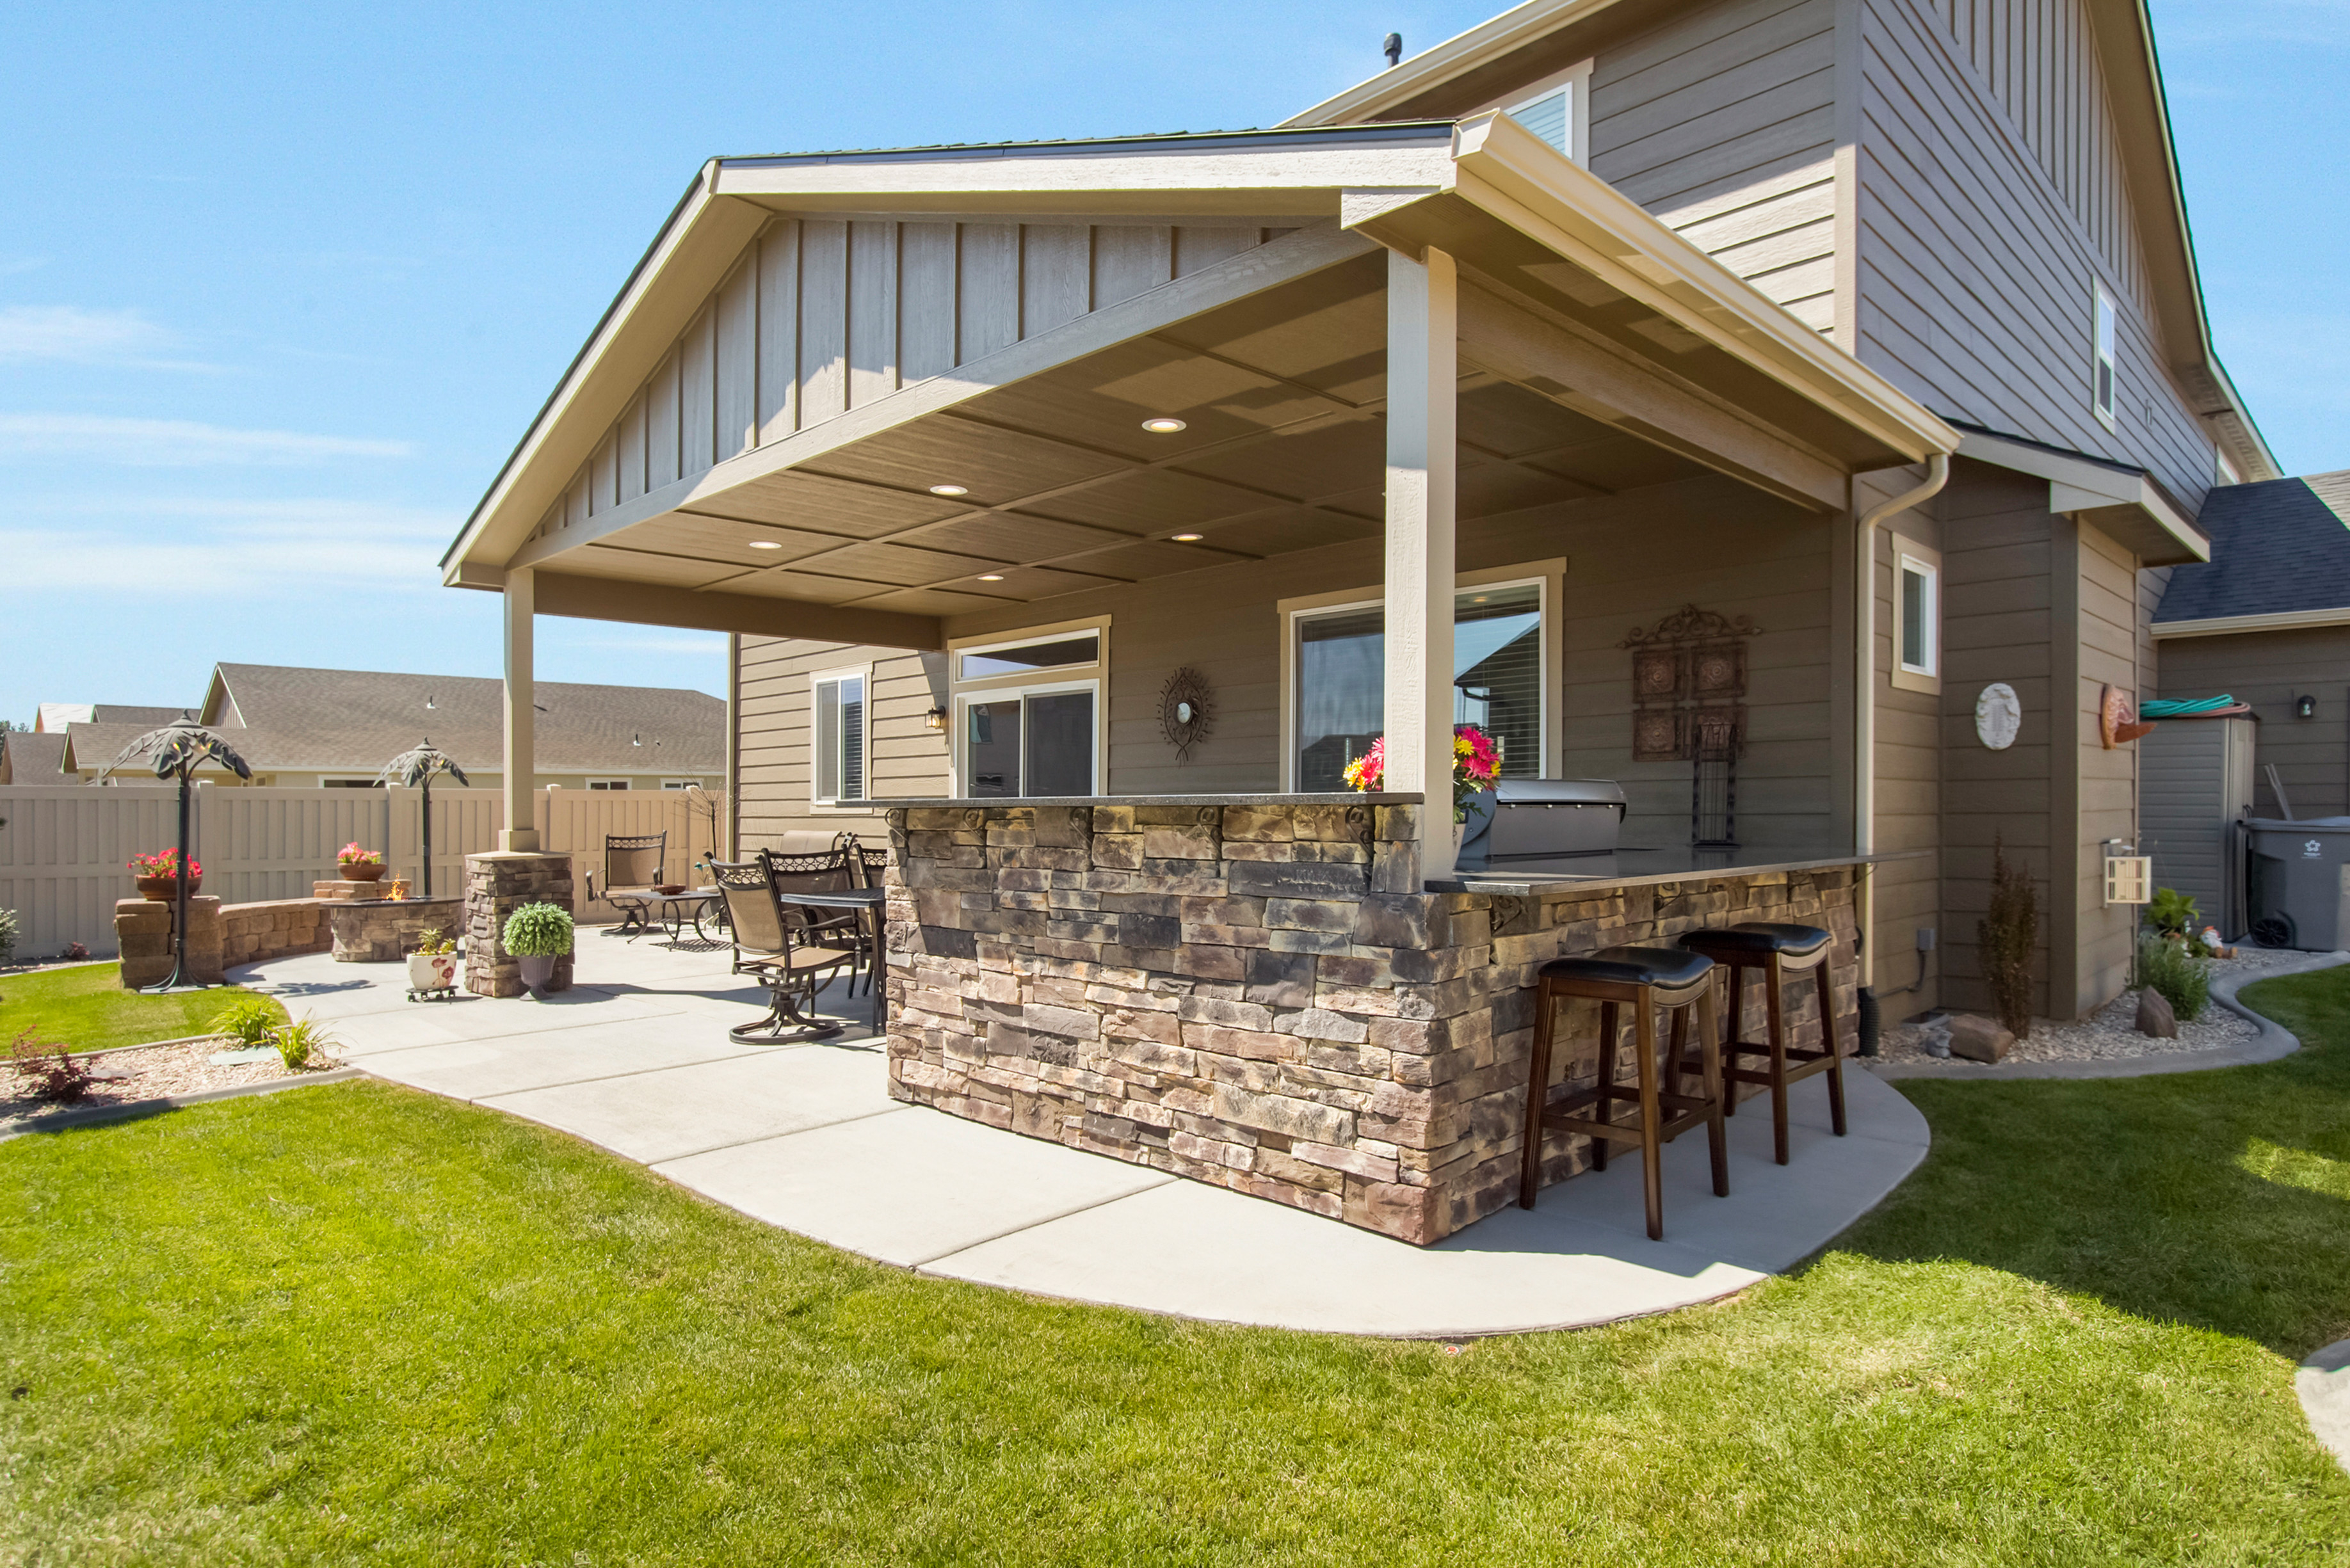 Backyard Ideas For Your New Home Hayden Homes Blog intended for 11 Smart Ideas How to Upgrade Home Backyard Ideas